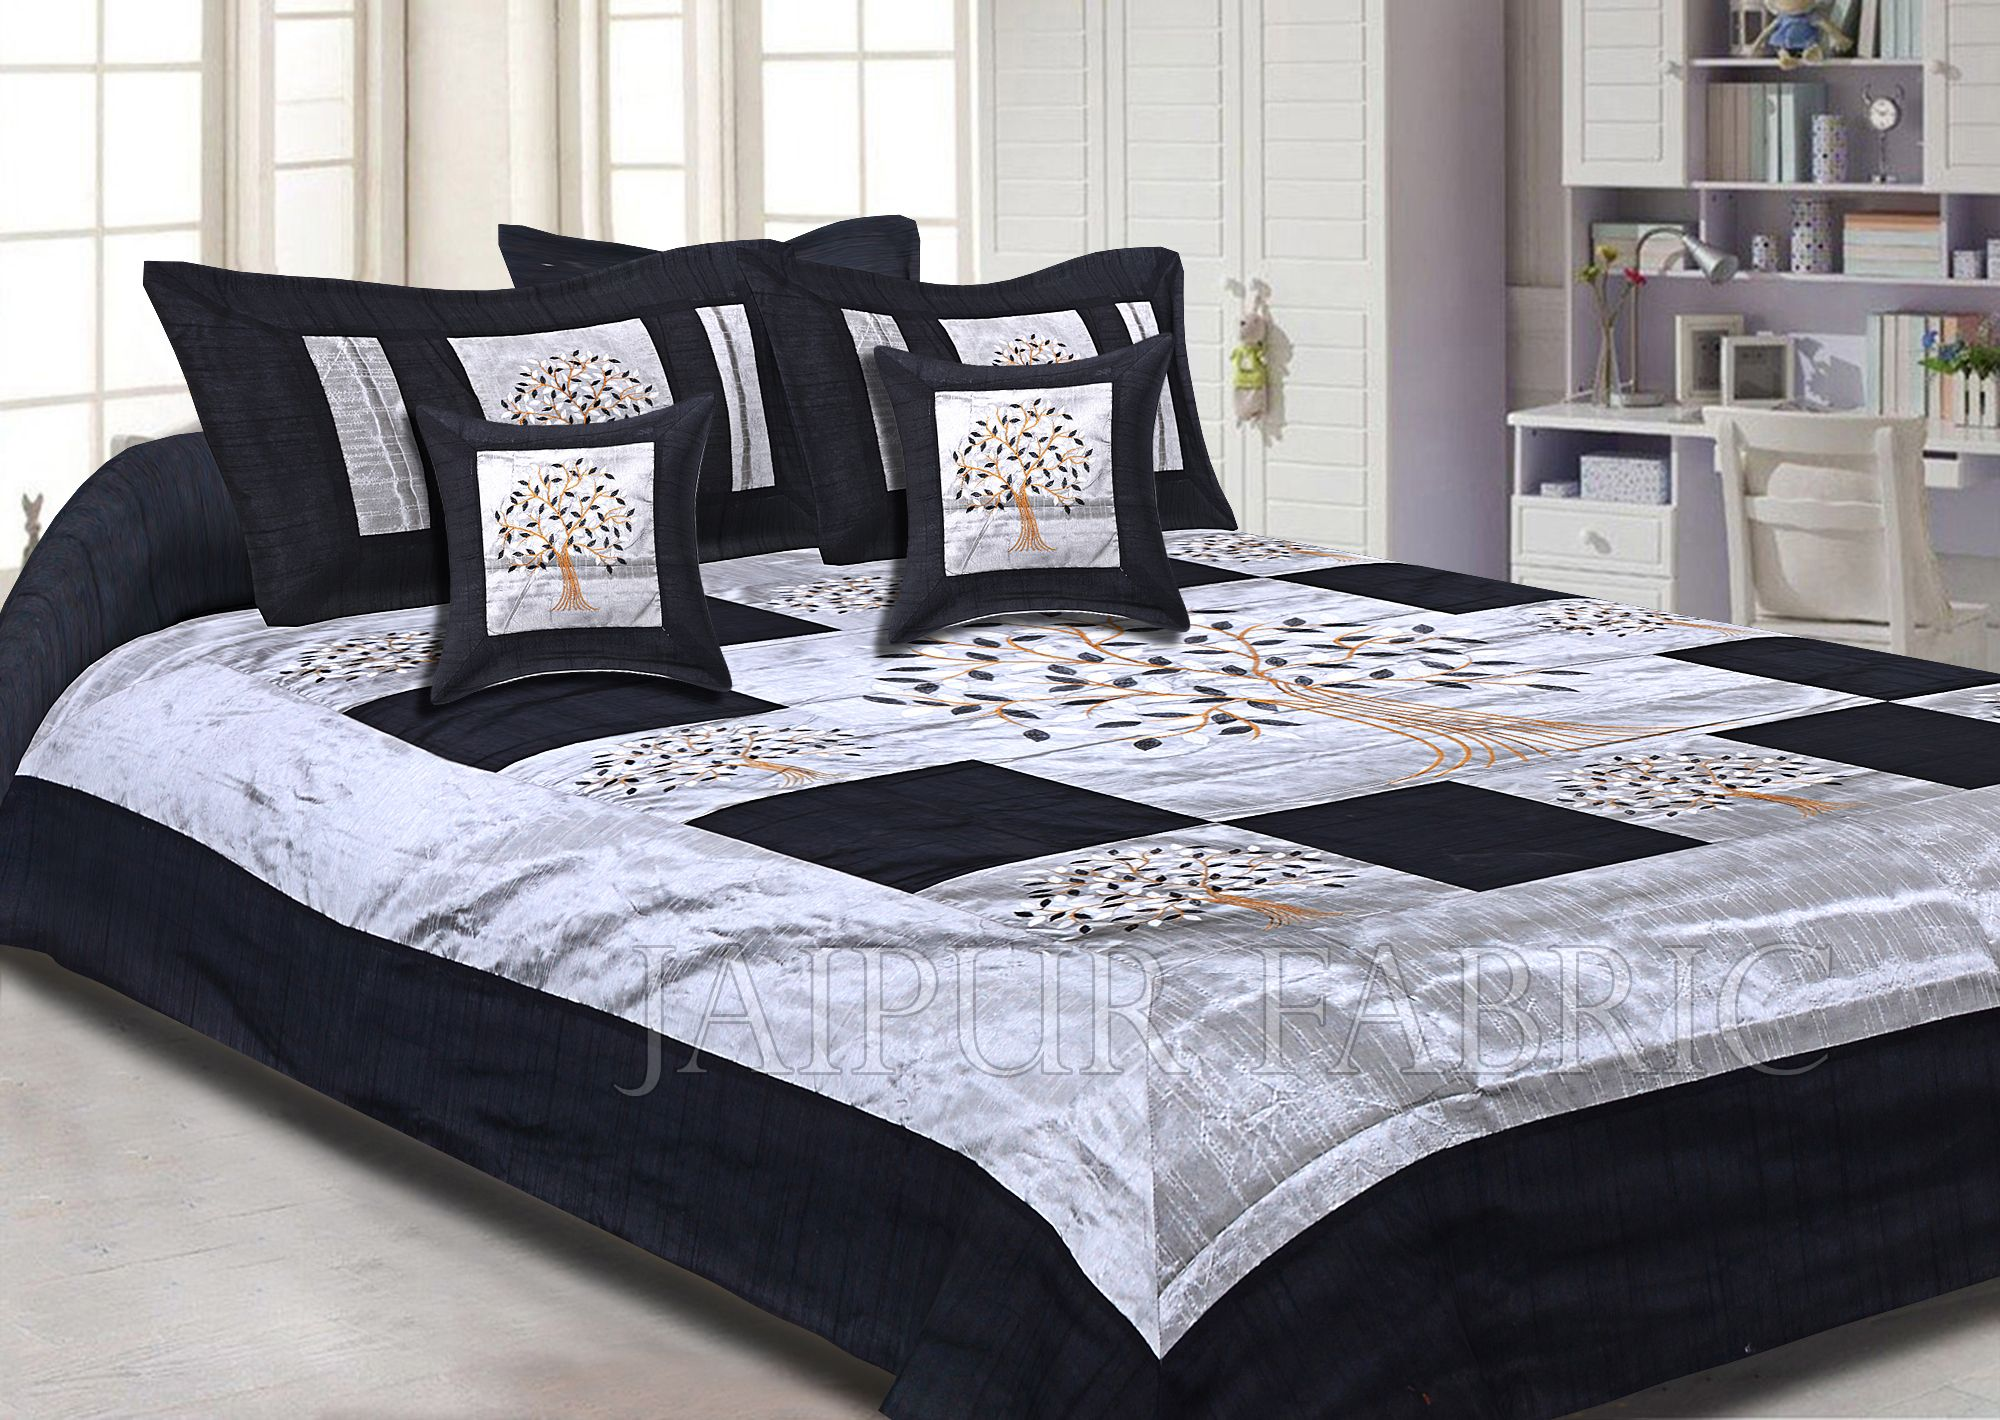 Gray Base Machine Embroidery Black Patch Work Silk Double Bed Sheet